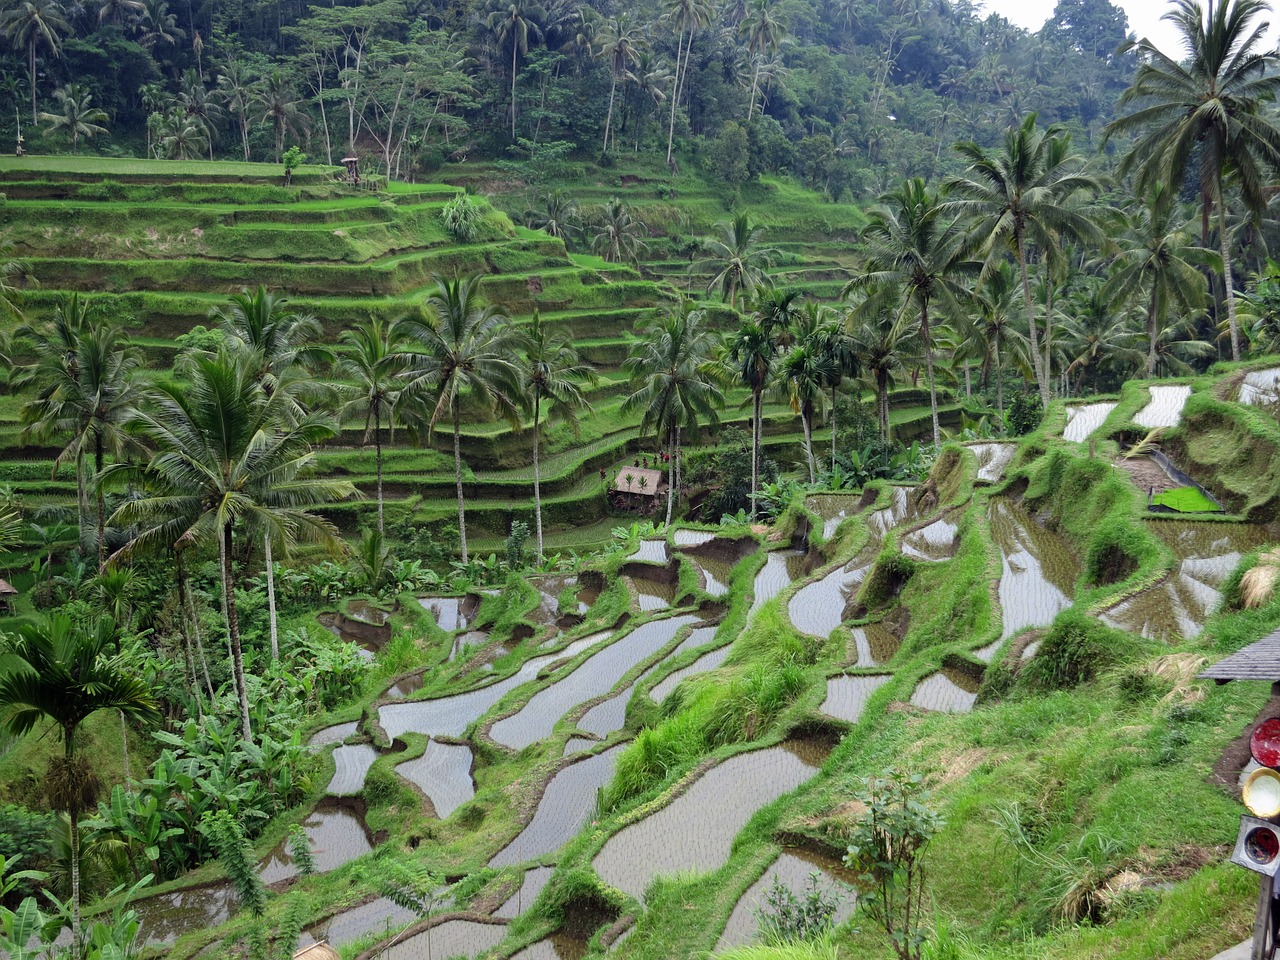 Rice terraces in Bali, Indonesia with many palm trees